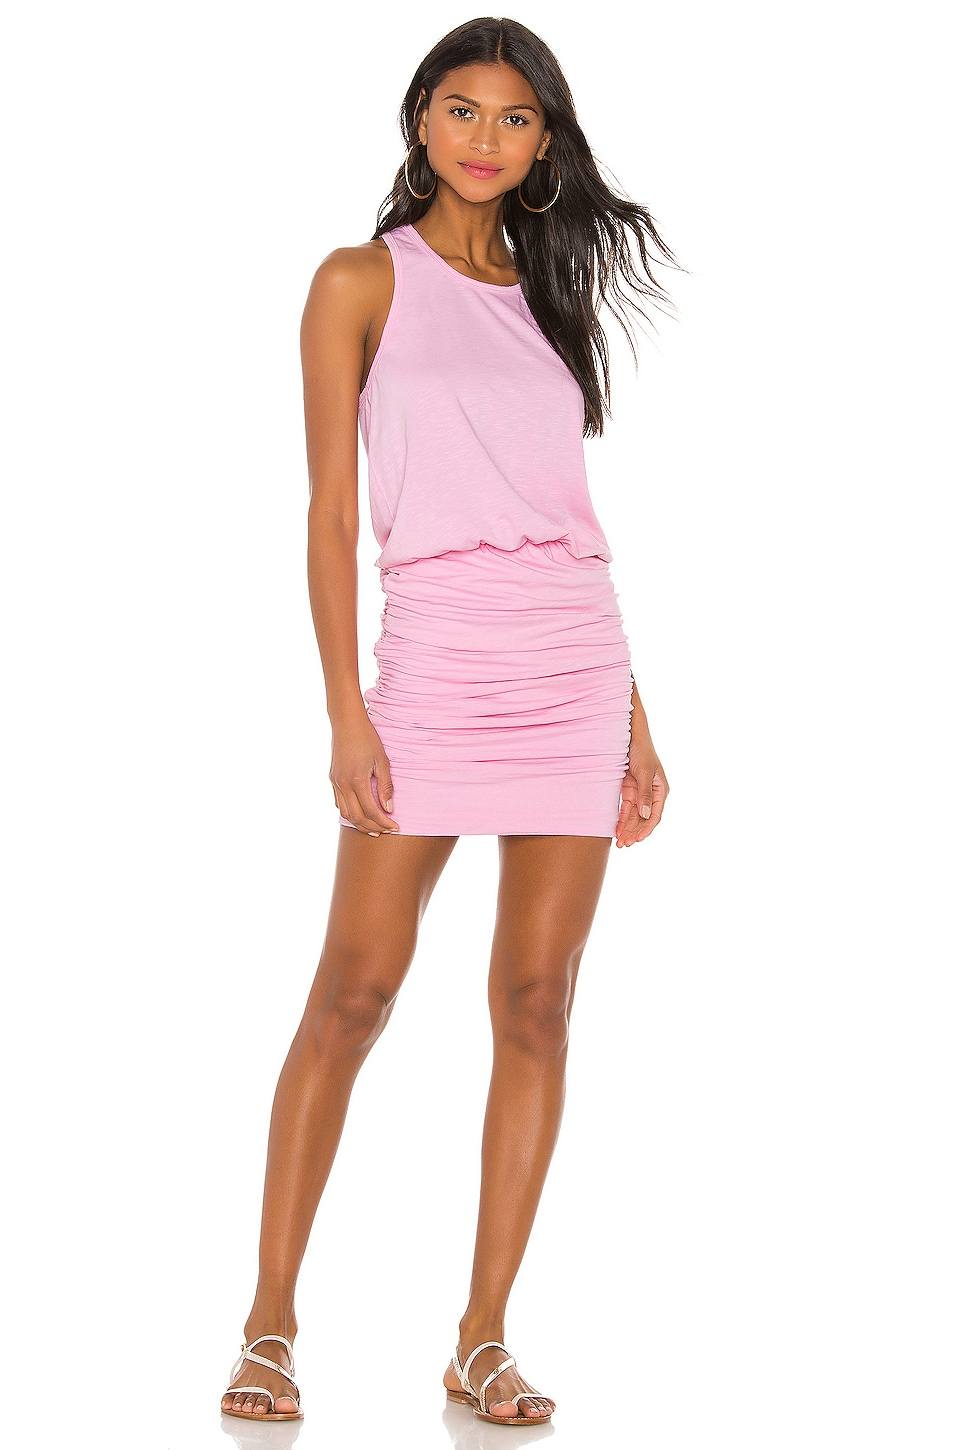 SUNDRY Sleeveless Dress in Bubblegum